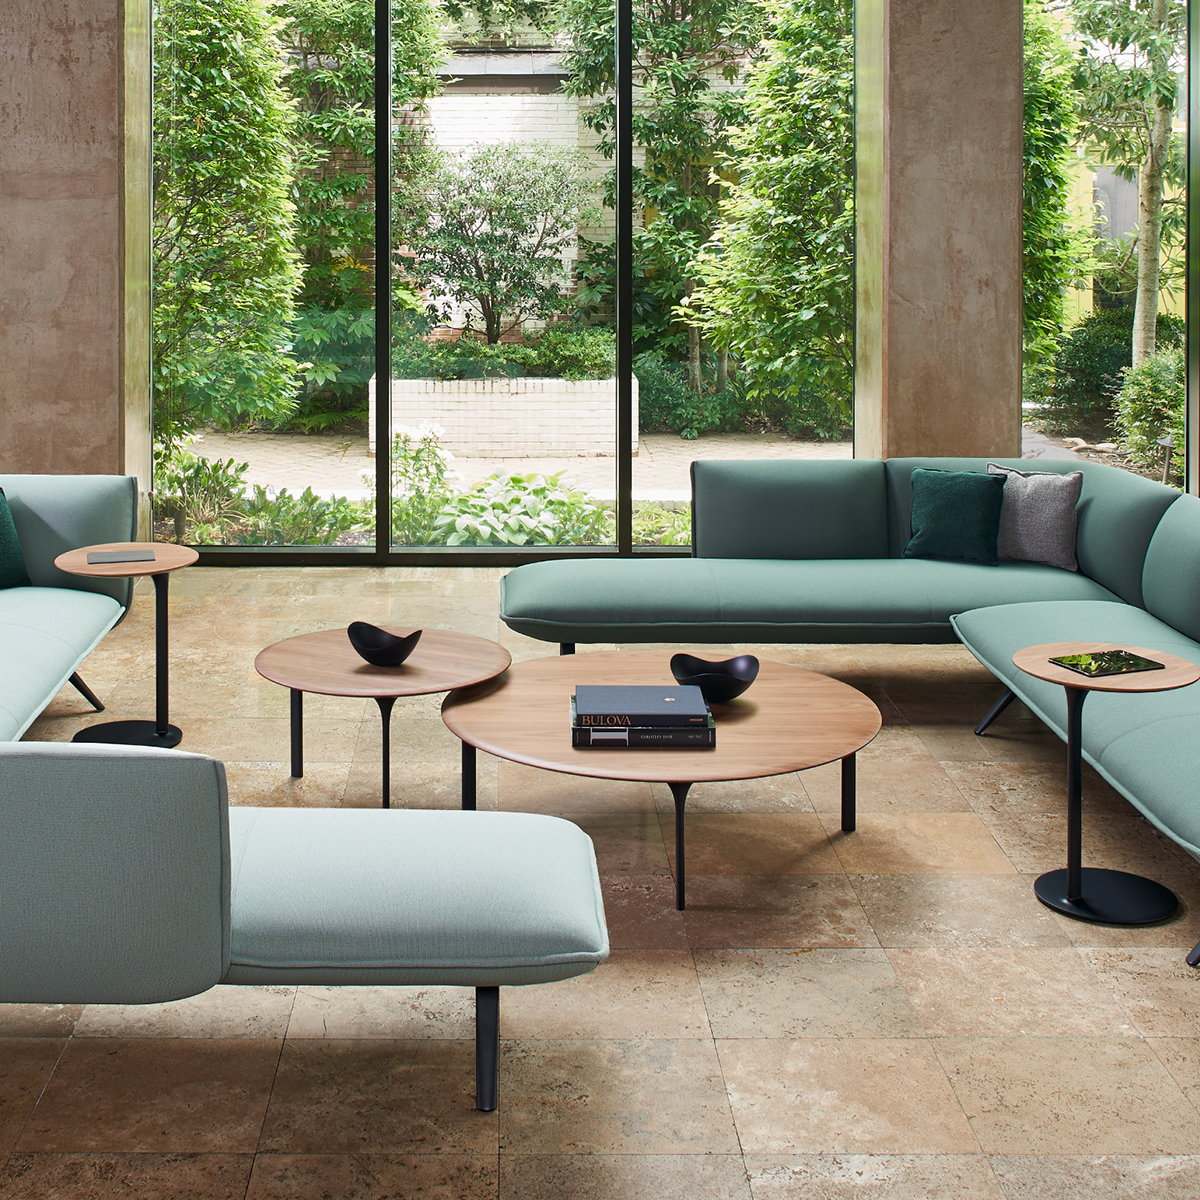 Bernhardt Design Launches Luca by Luca Nichetto